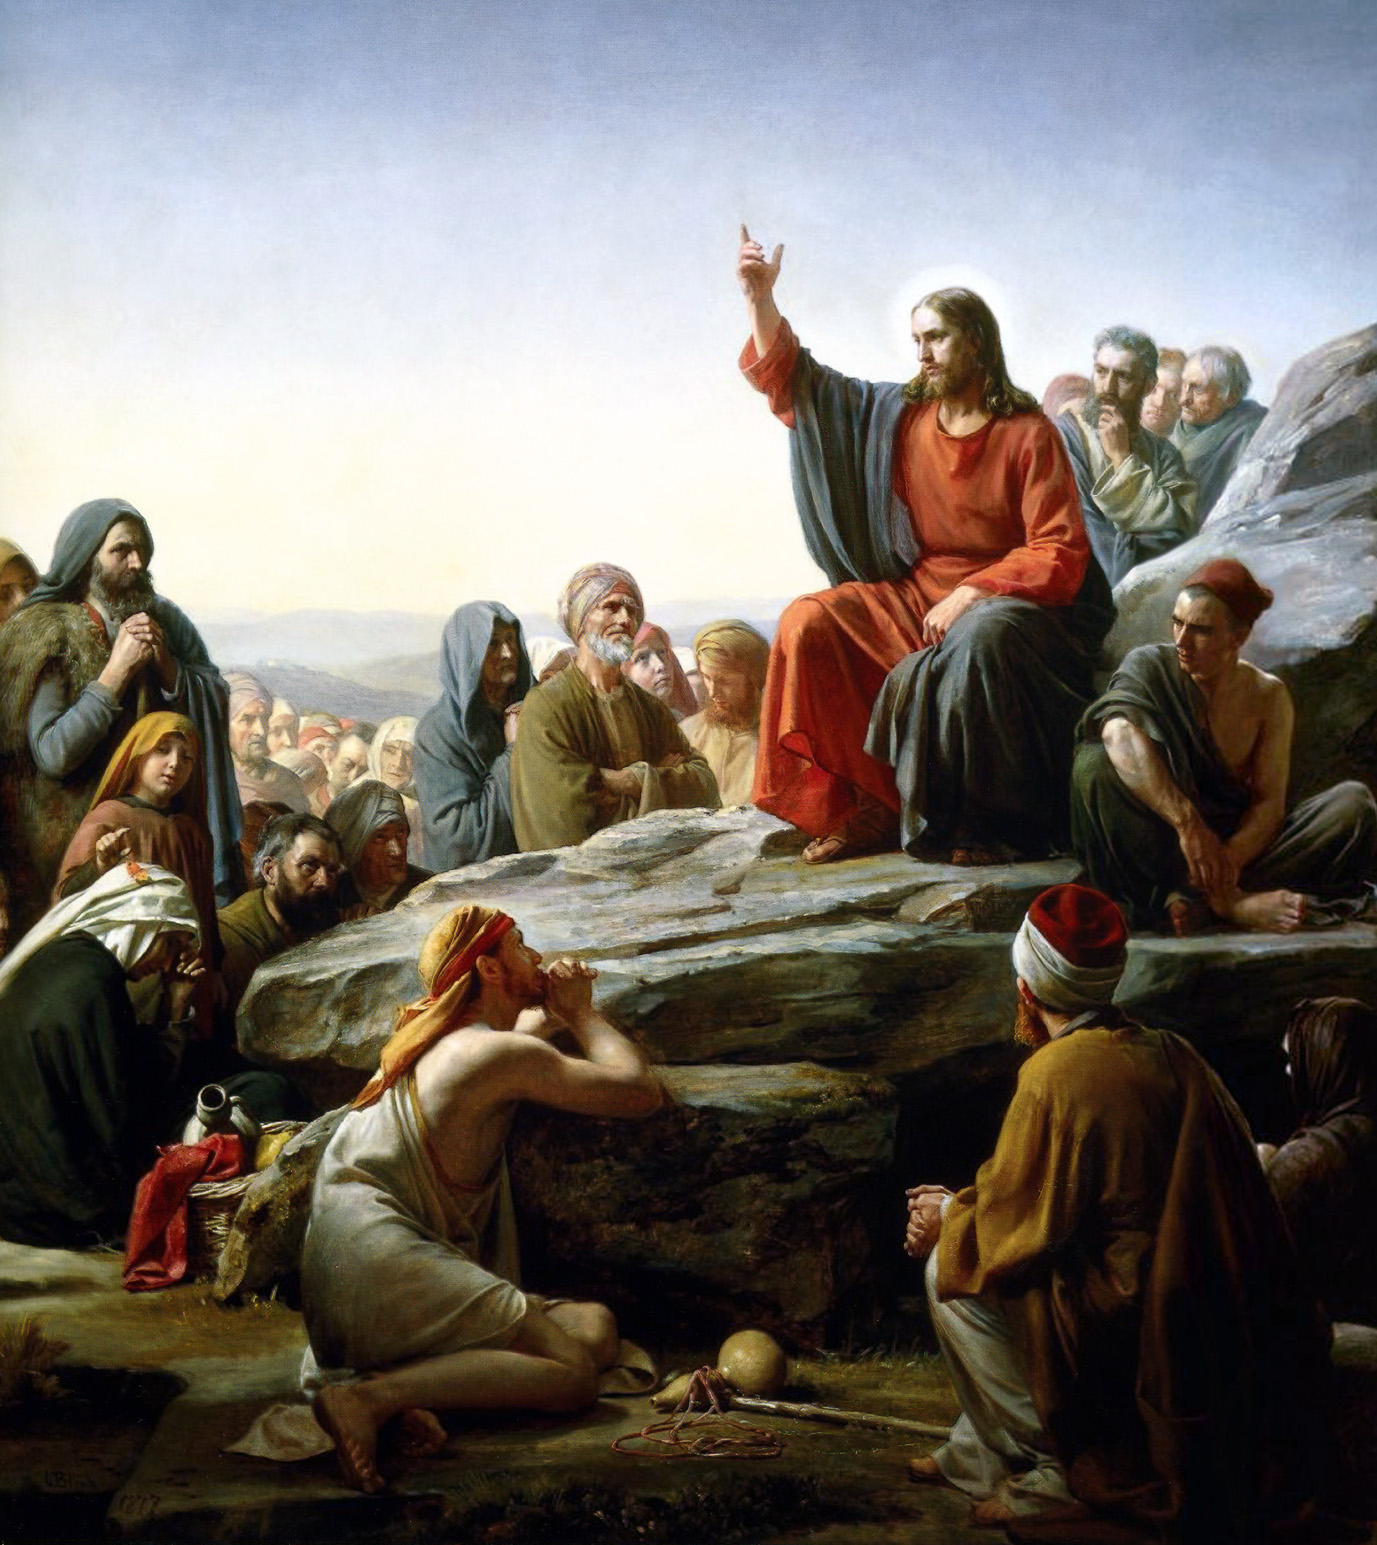 The Wise and Foolish Builders (Matthew 7:24-27)